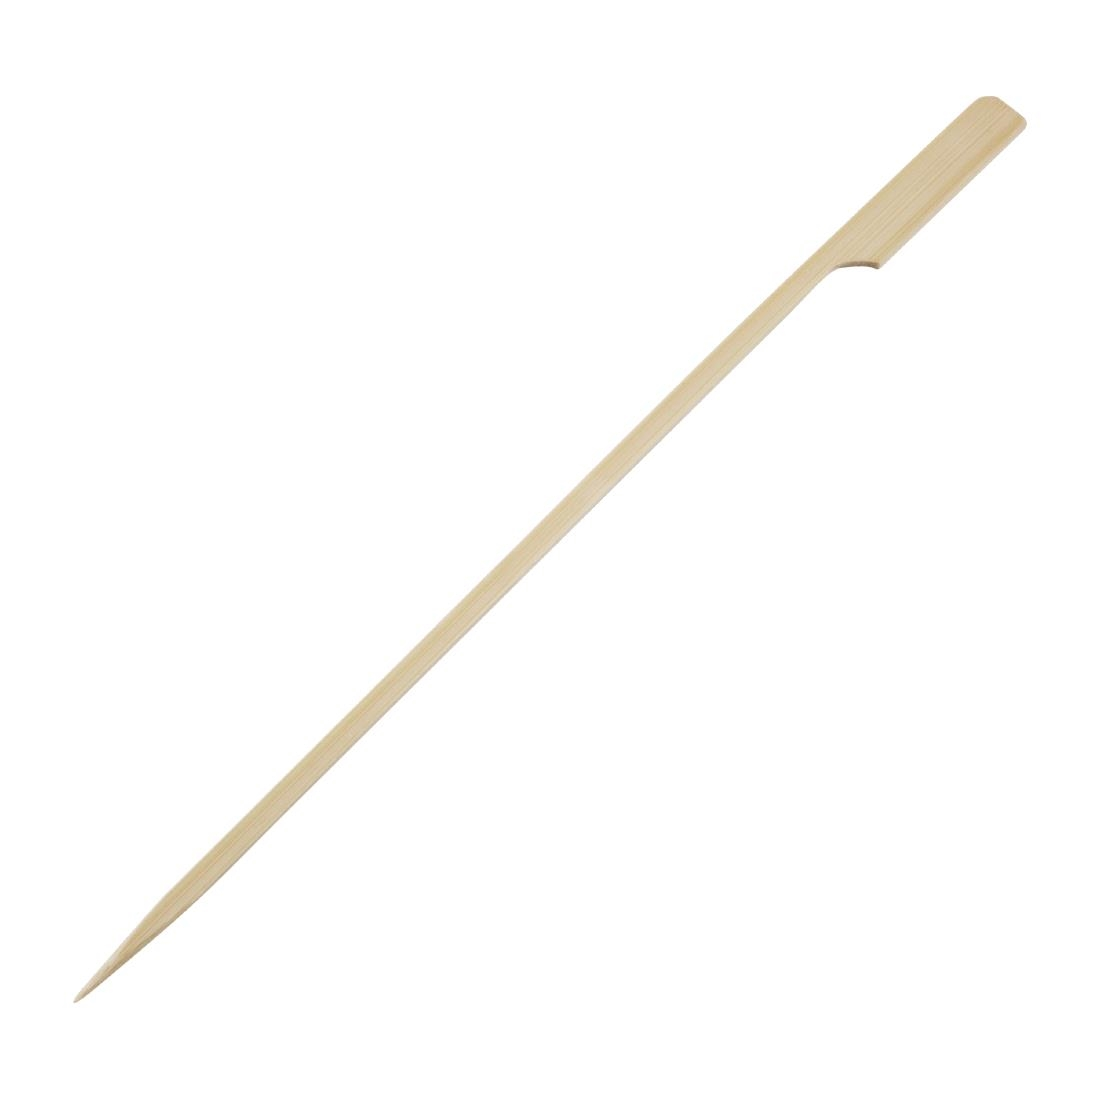 Fiesta Green Biodegradable Bamboo Paddle Skewers 210mm Pack of 100